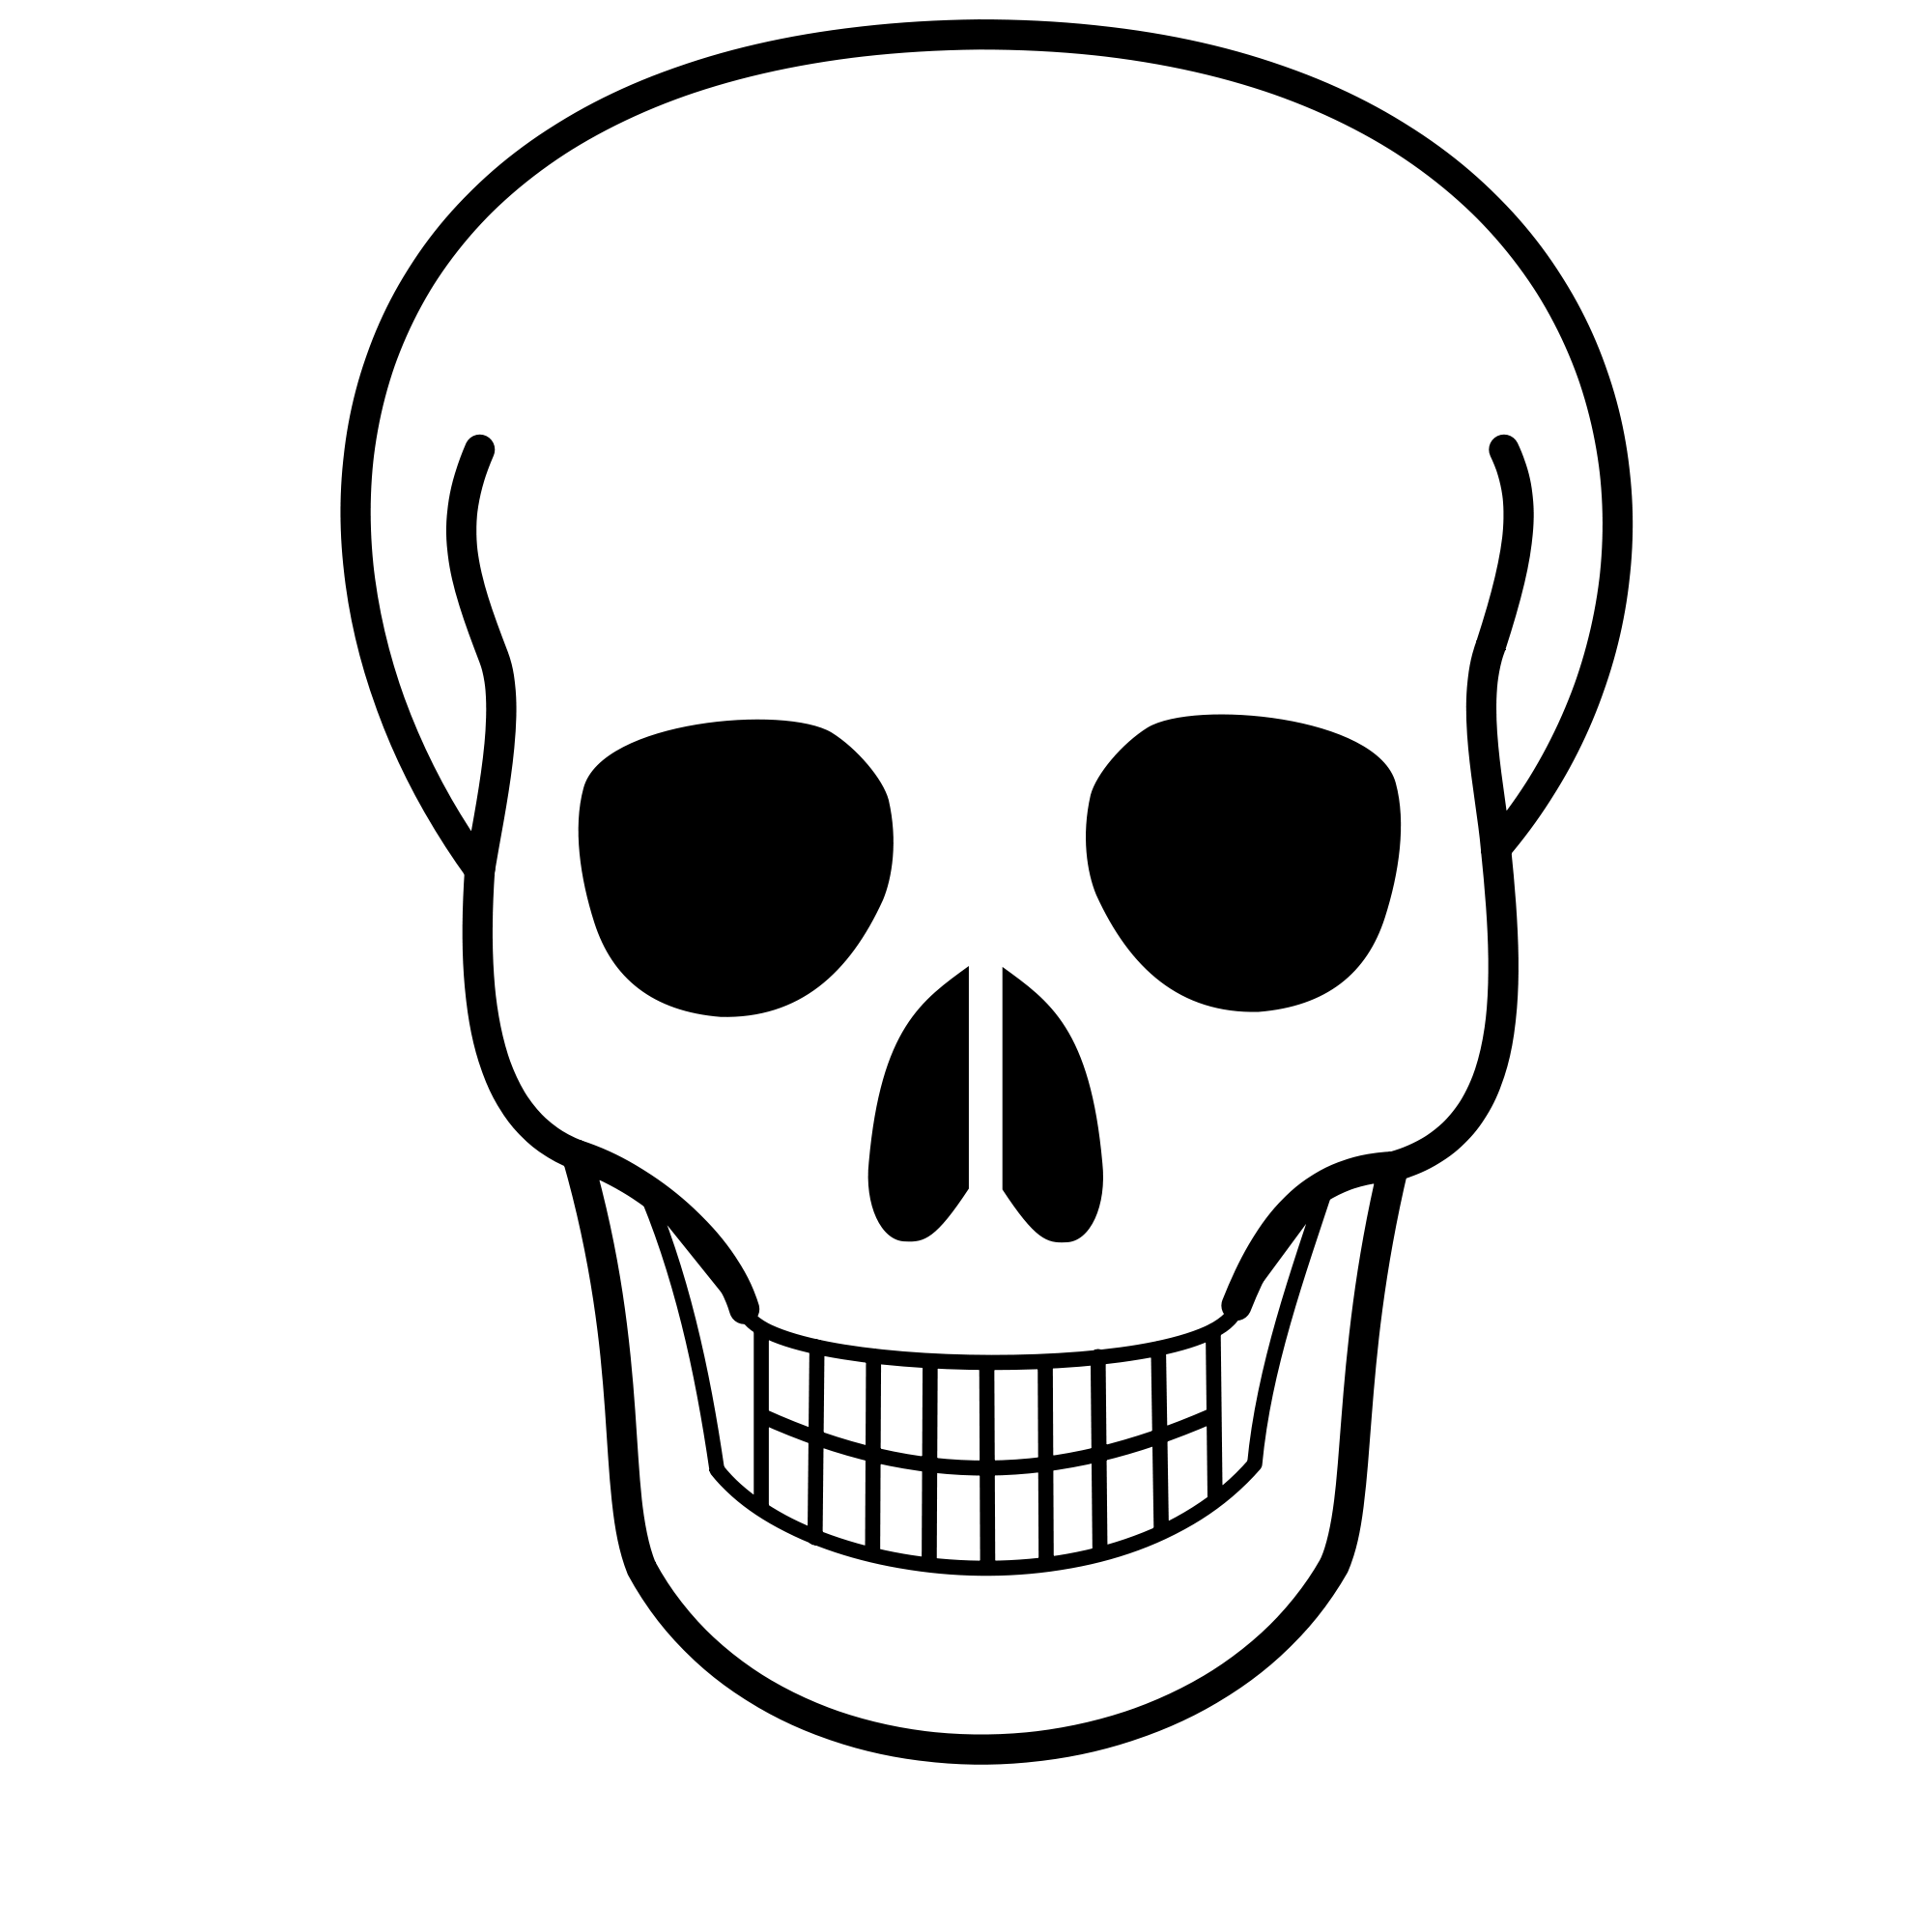 Cat skull clipart black and white download File:Skull-Icon.svg - Wikimedia Commons black and white download